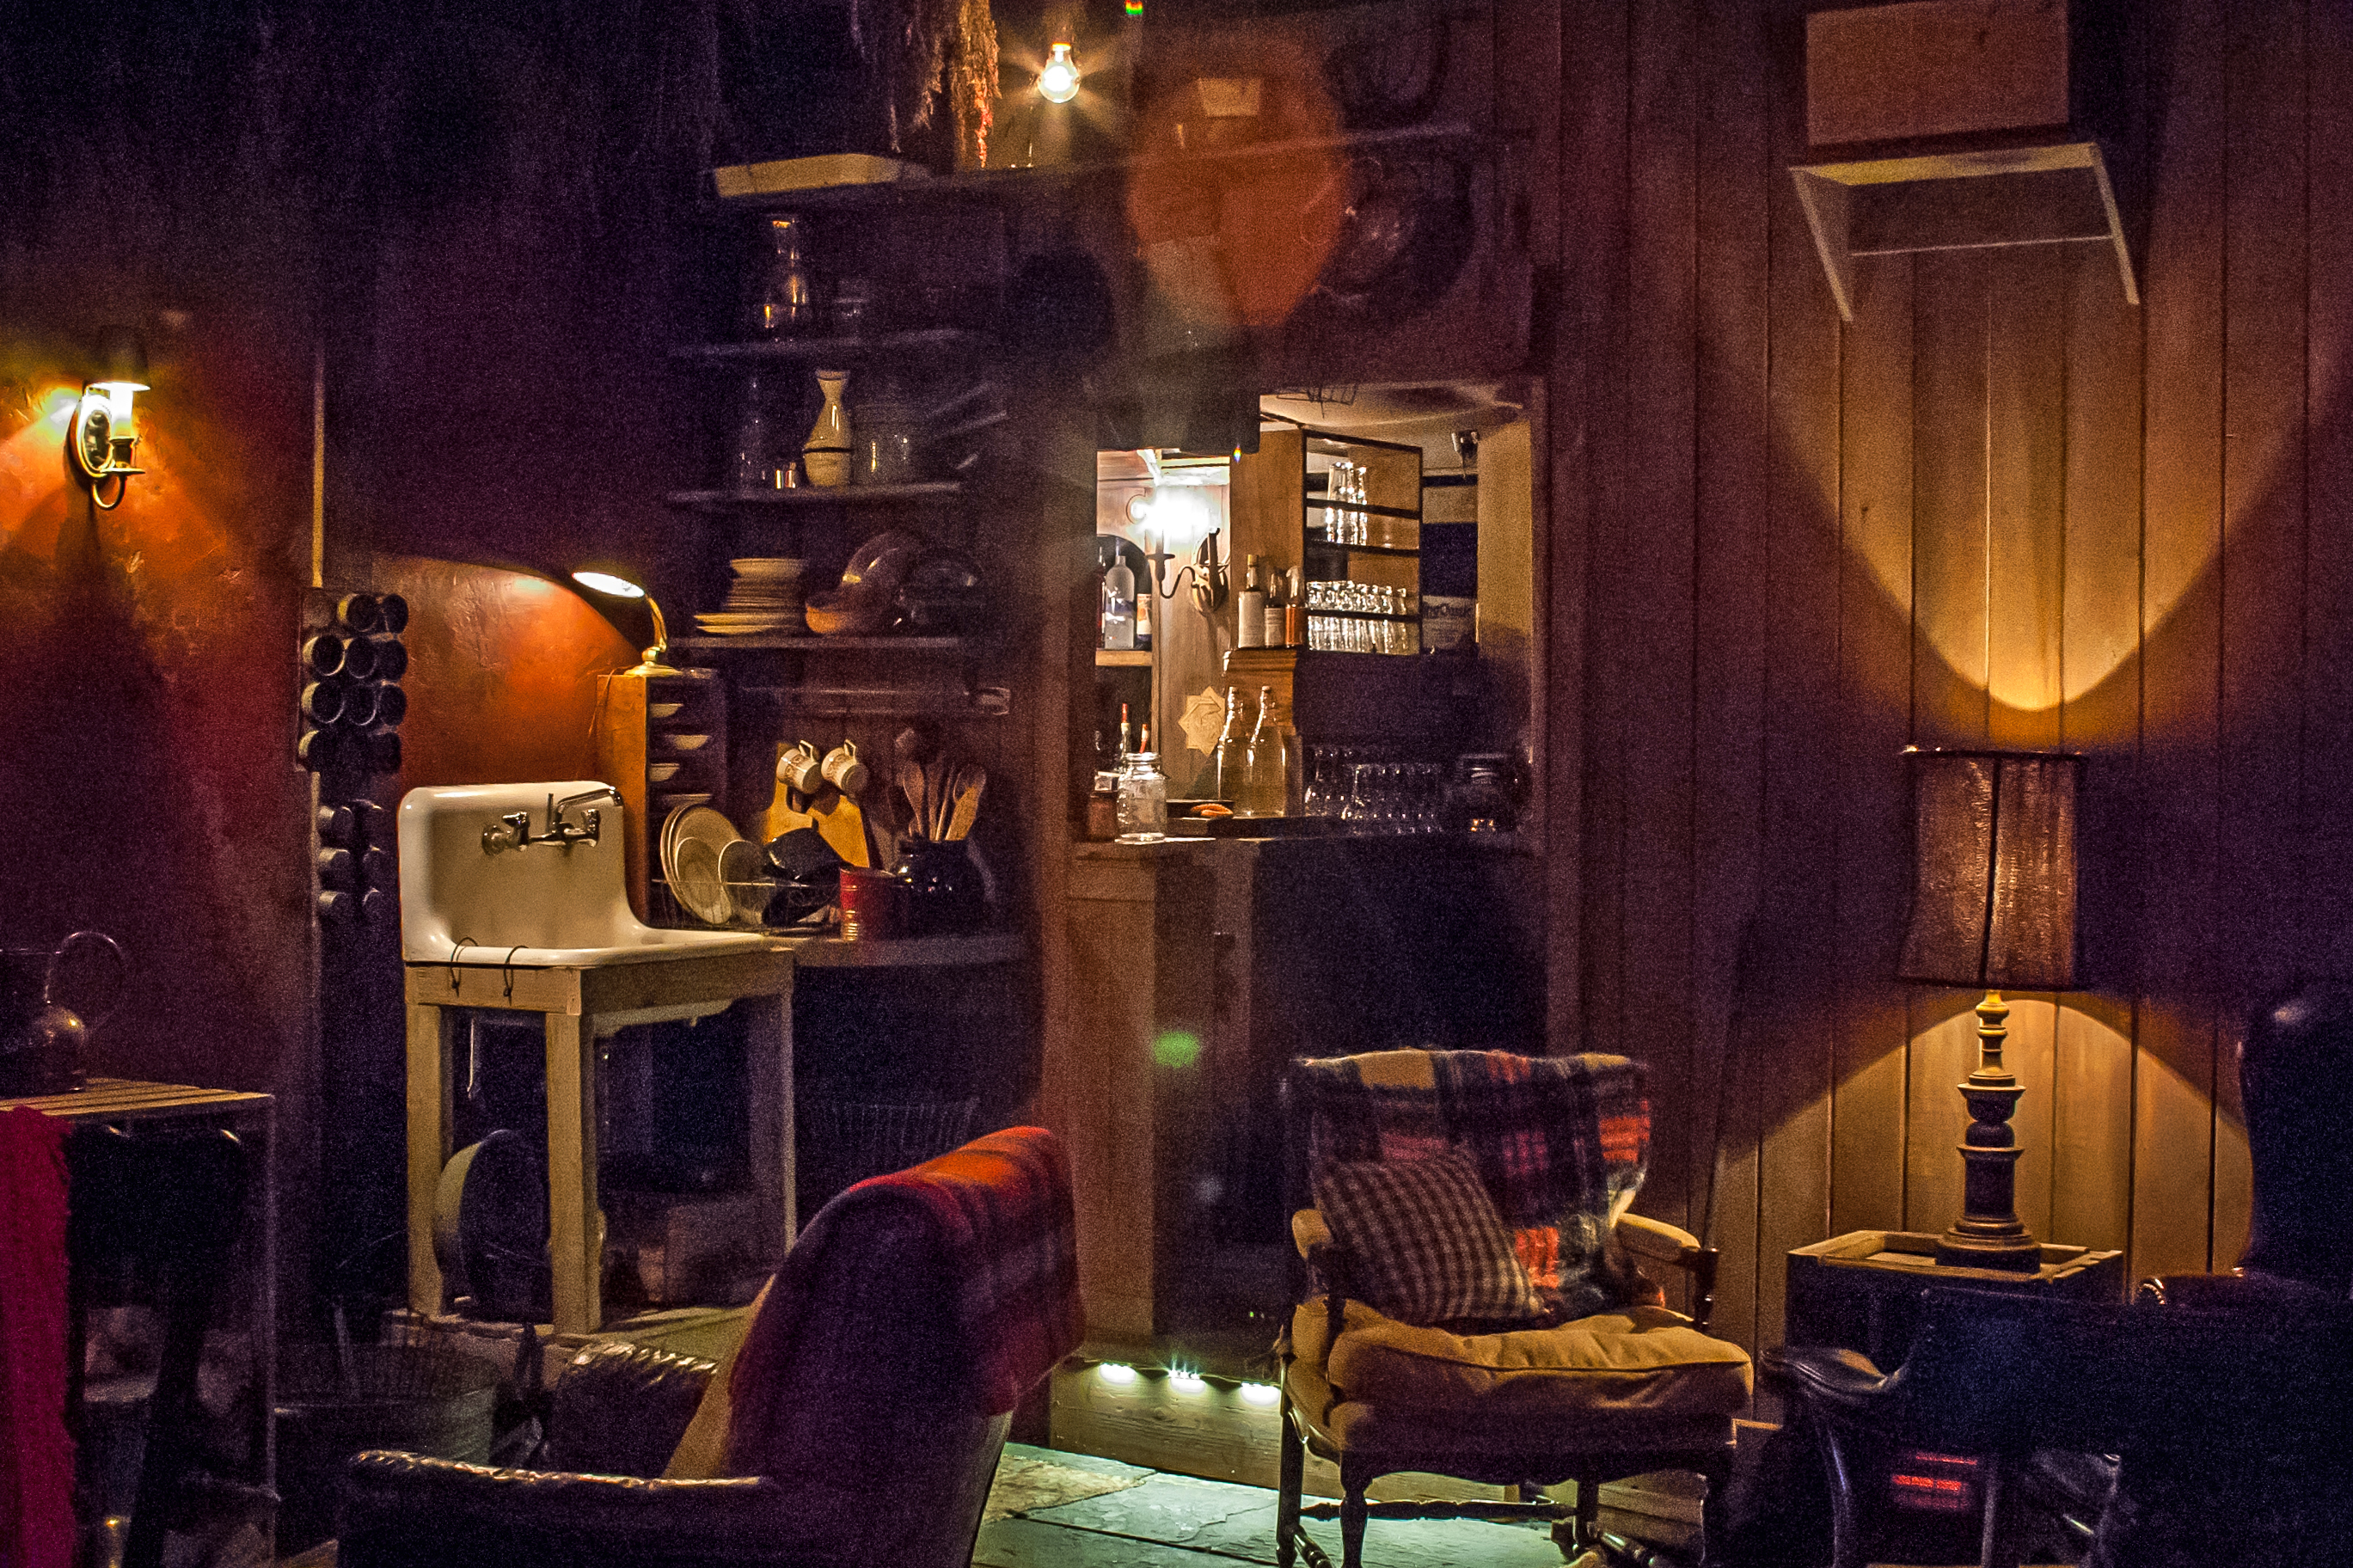 THE LODGE at MCKITTRICK HOTEL interior